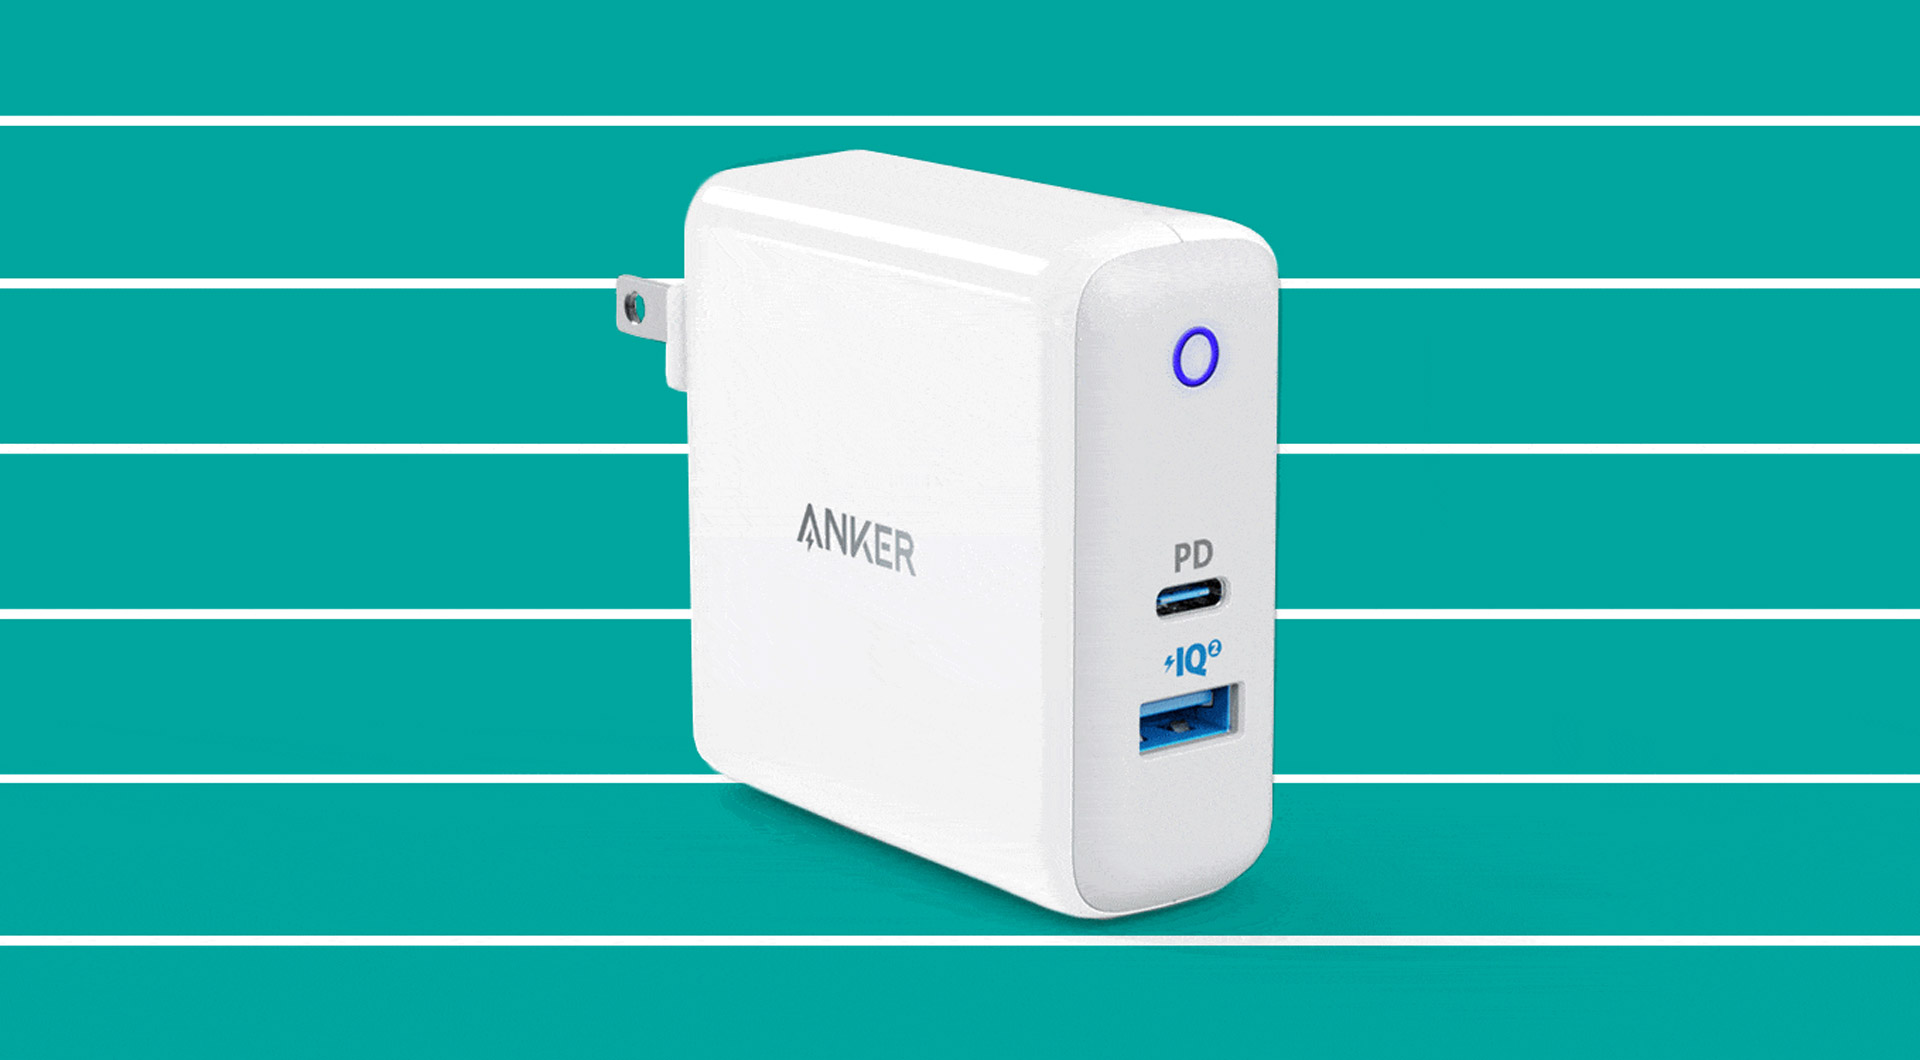 Top 10 Best USB Wall Chargers and Ports Buyers Guide 2020